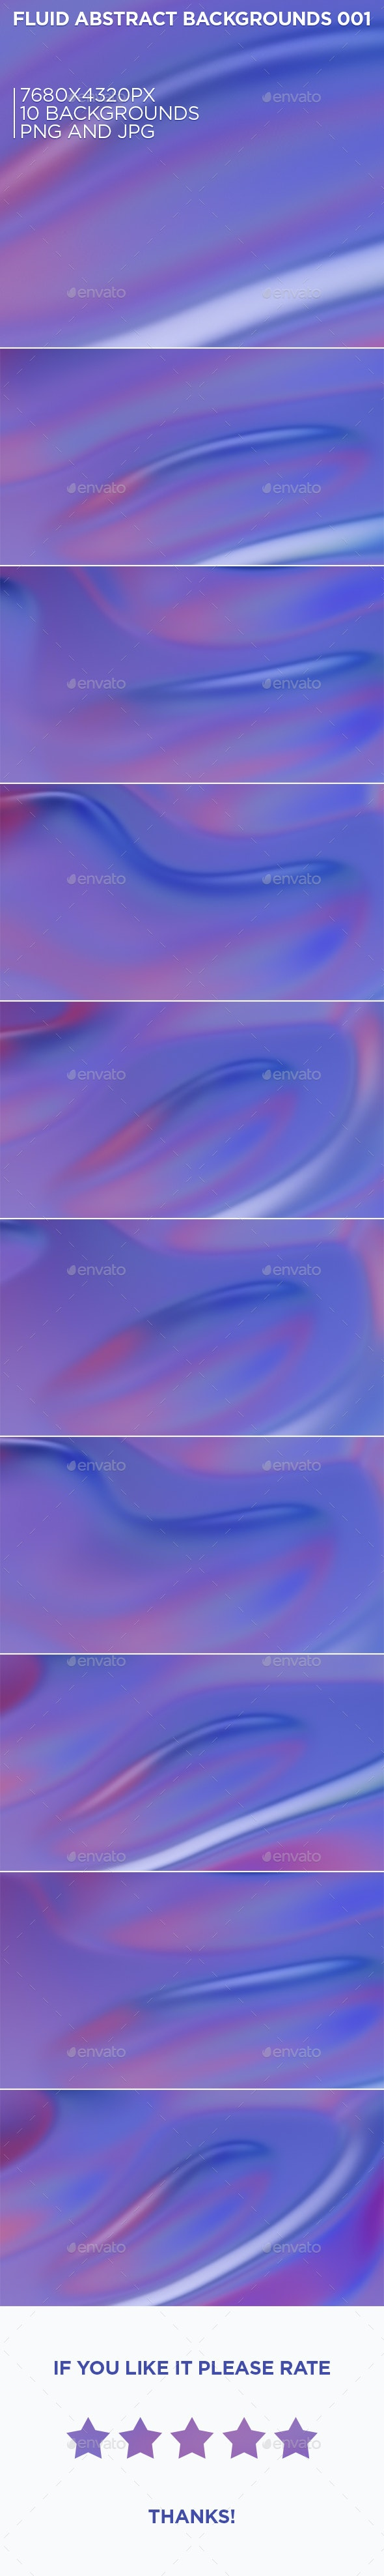 Fluid Abstract Backgrounds 001 - Abstract Backgrounds